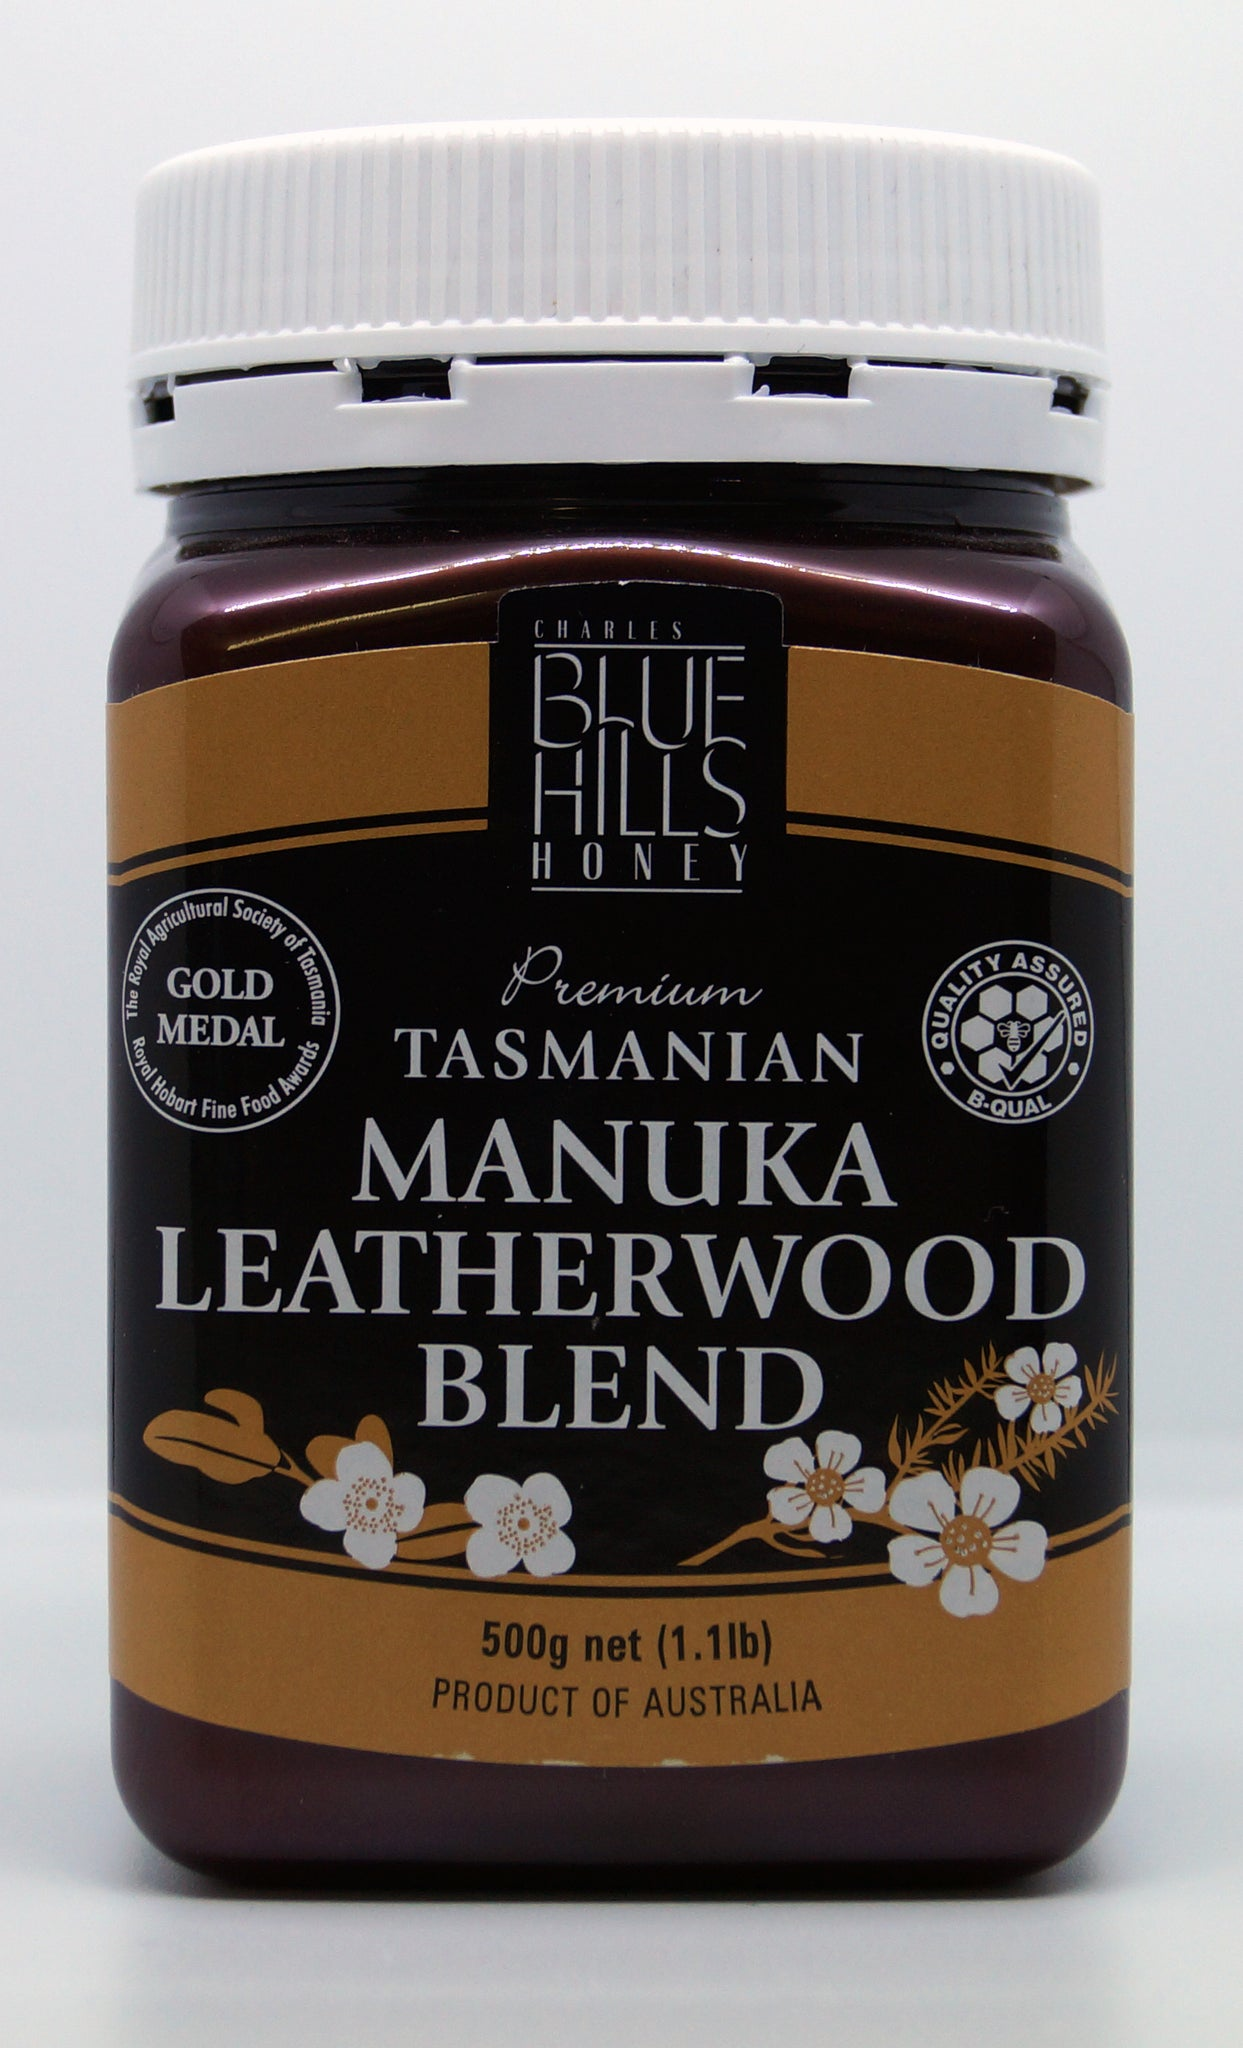 Blue Hills Manuka Leatherwood Blend